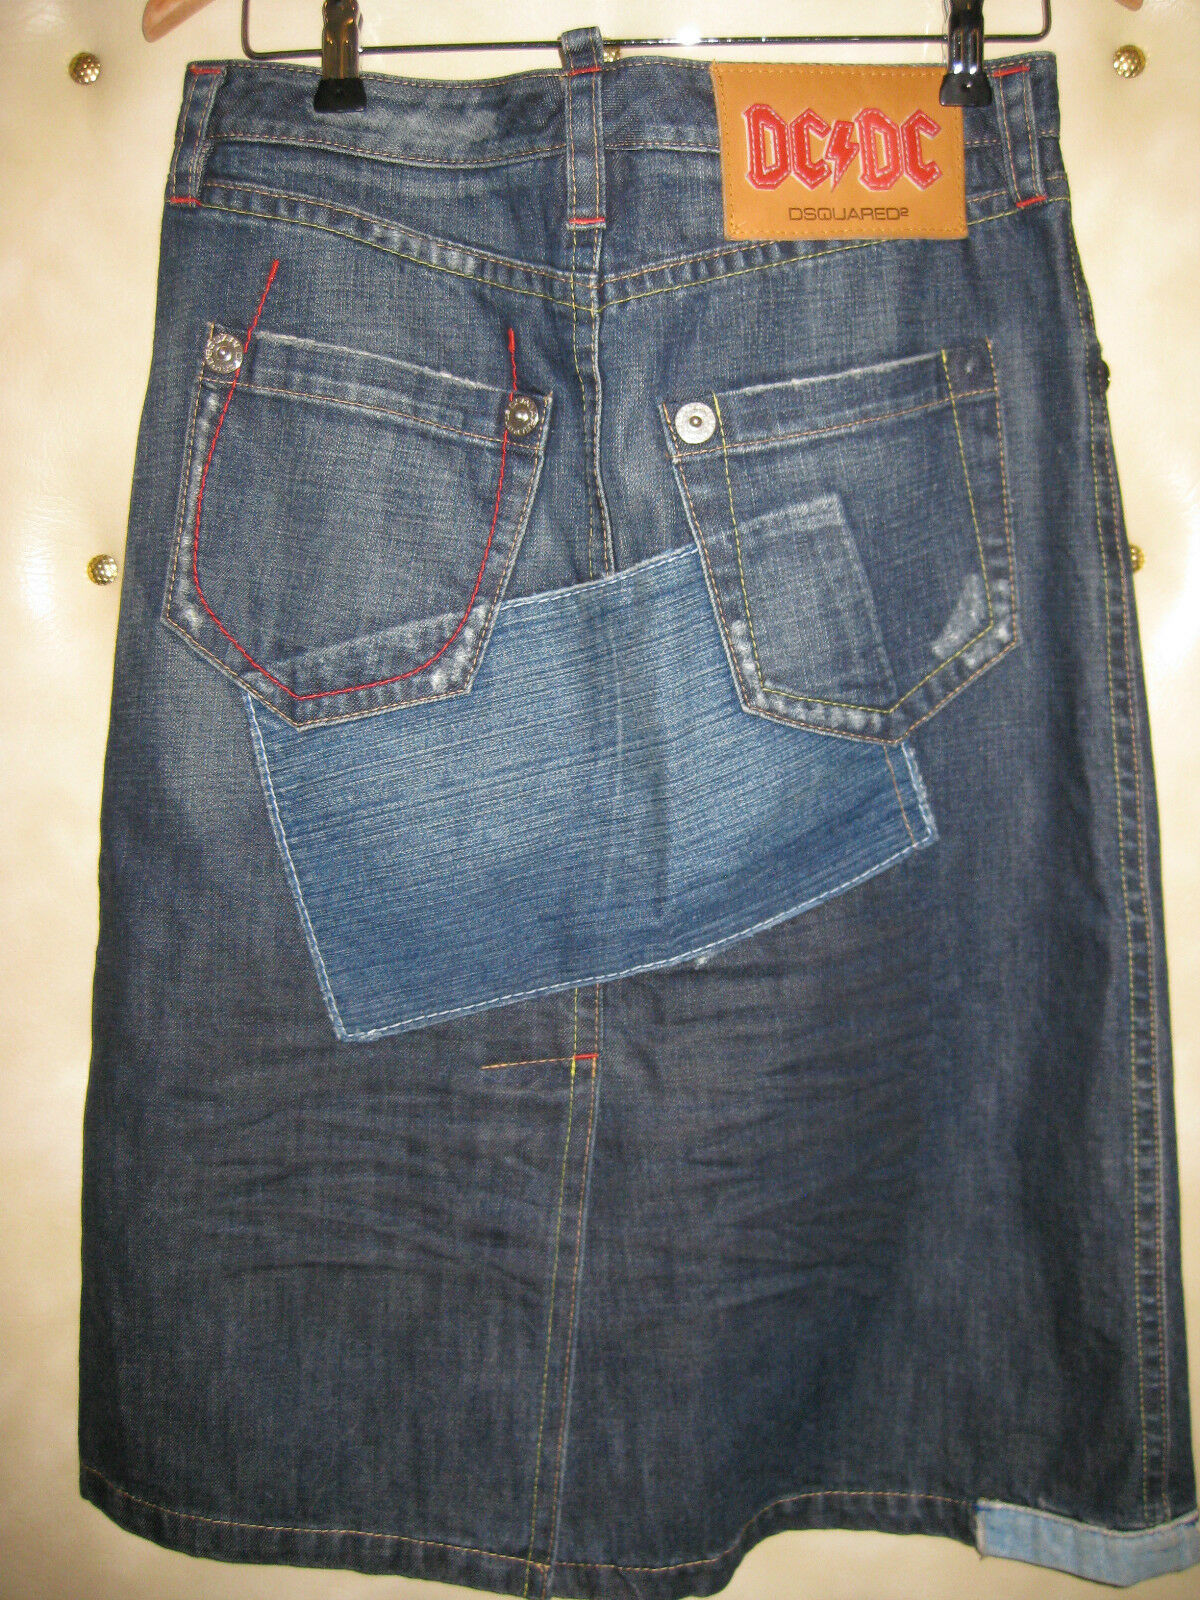 ❀ ❀ ❀ DSQUARED DSQUARED DSQUARED JEANS Rock nel look usato Tg. IT 42 dt.36 36 68a75b